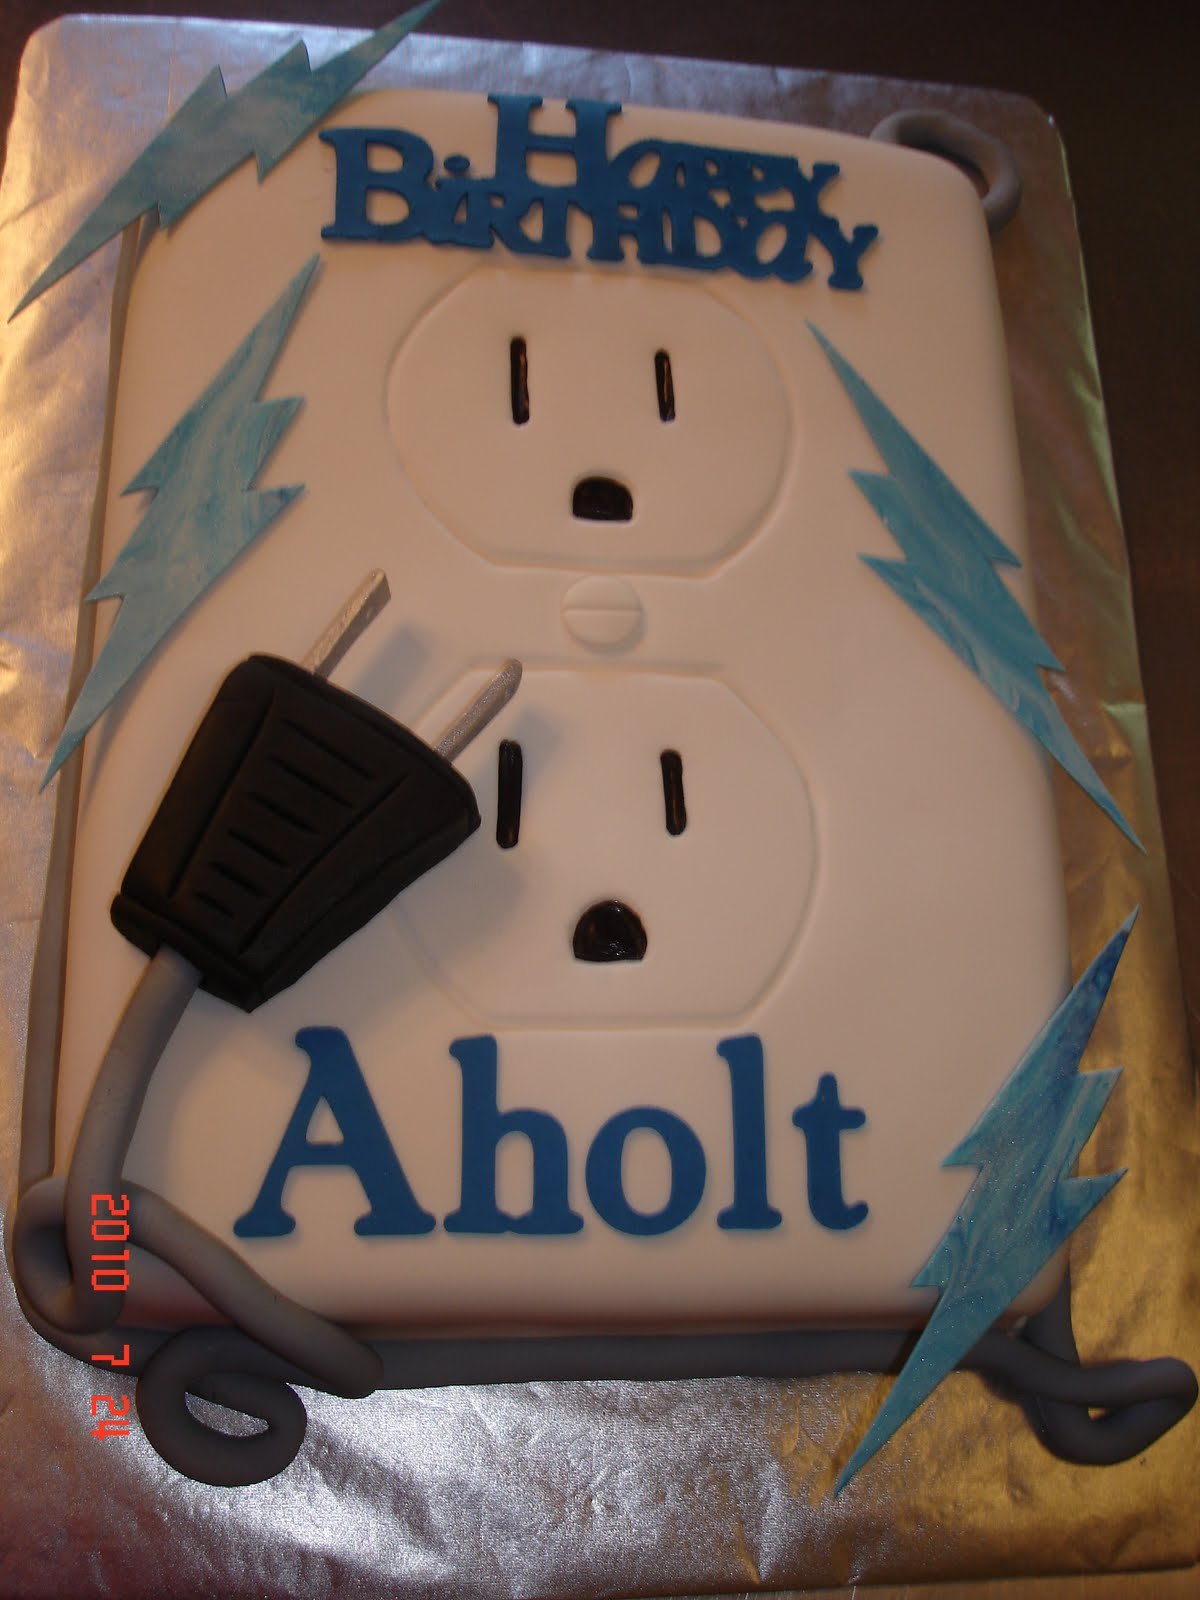 Electrician Cake Decorations http://lauralynns.blogspot.com/2010/07/electricians-birthday.html